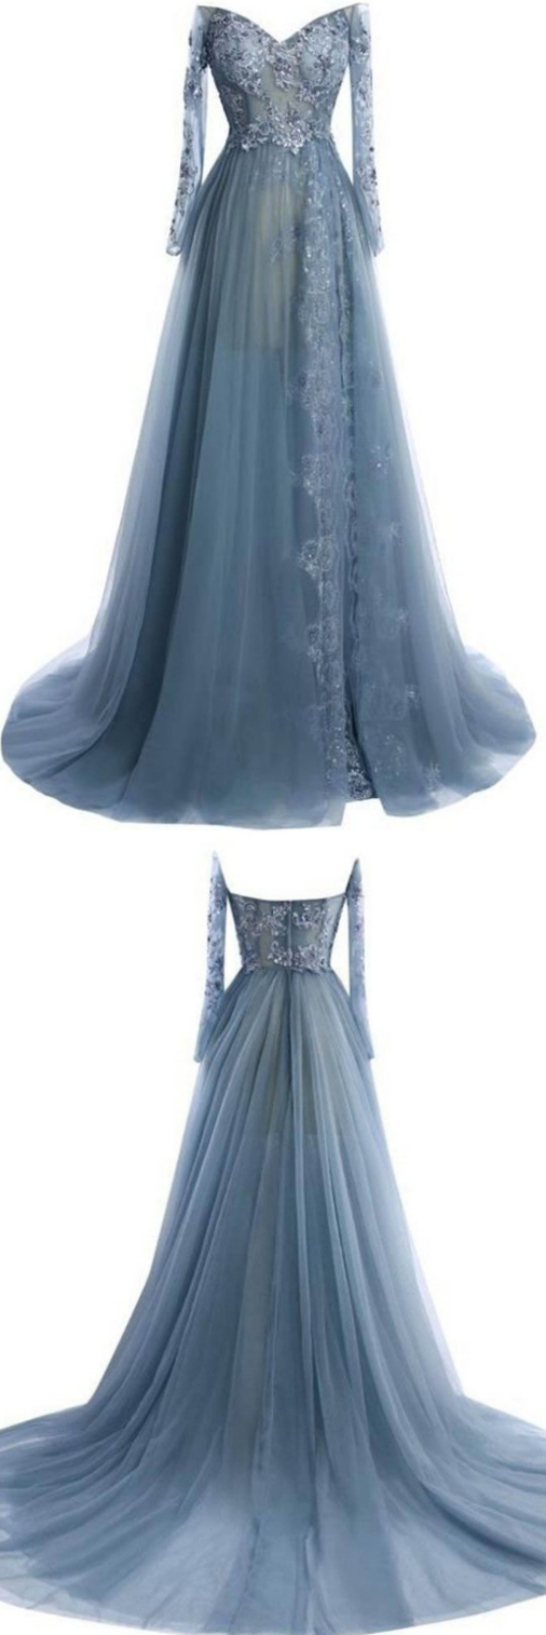 Princess prom dresses grey evening dresses long prom dresses with